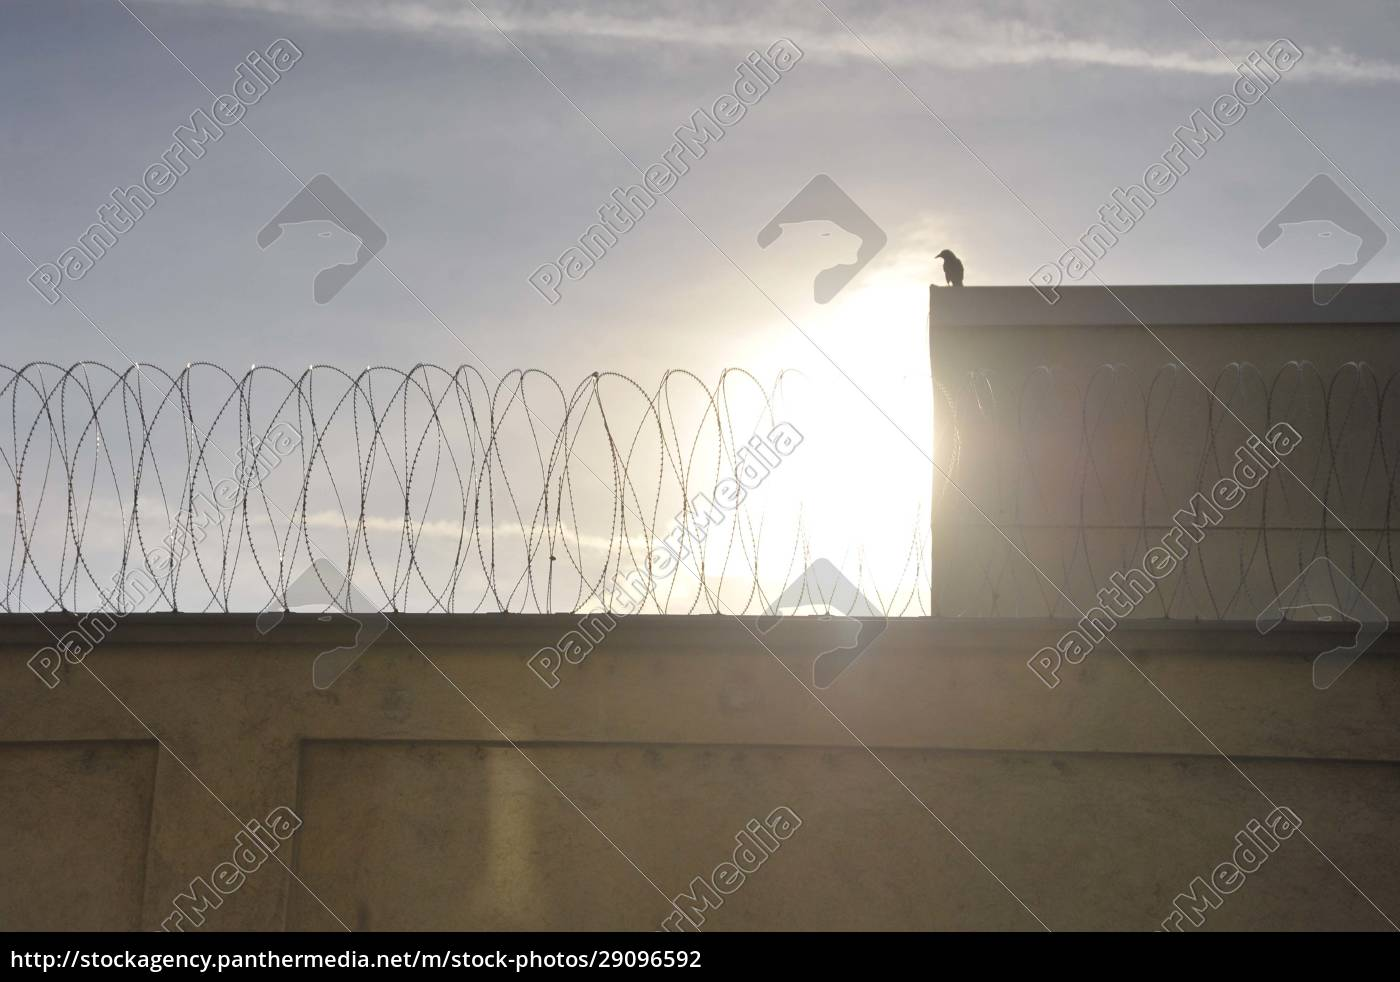 barbed, wire, in, the, penal, system - 29096592